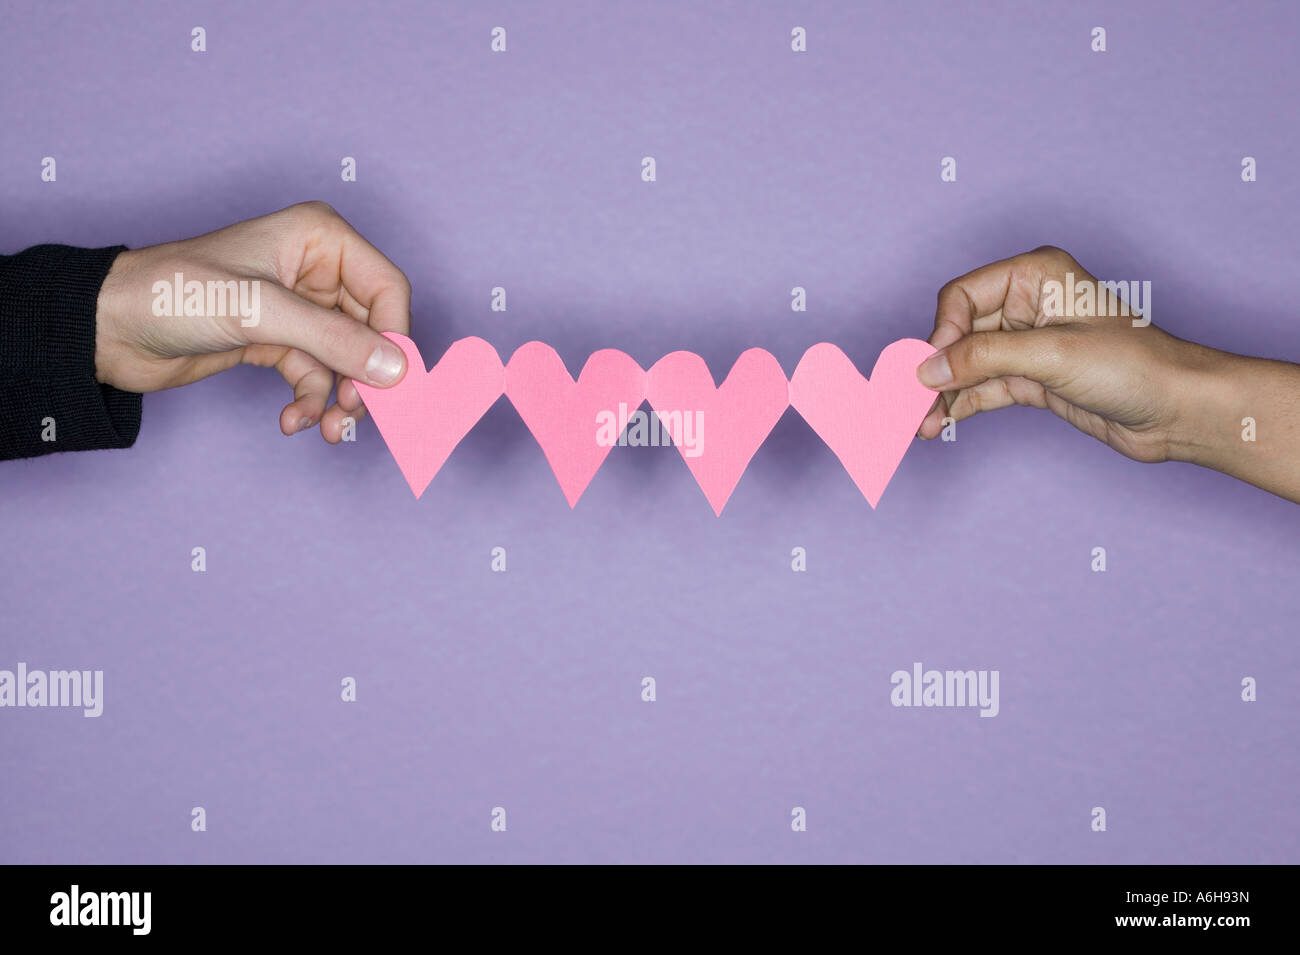 Close Up Of Two Mixed Race Hands Holding Pink Paper Cut Out Hearts In Between Them